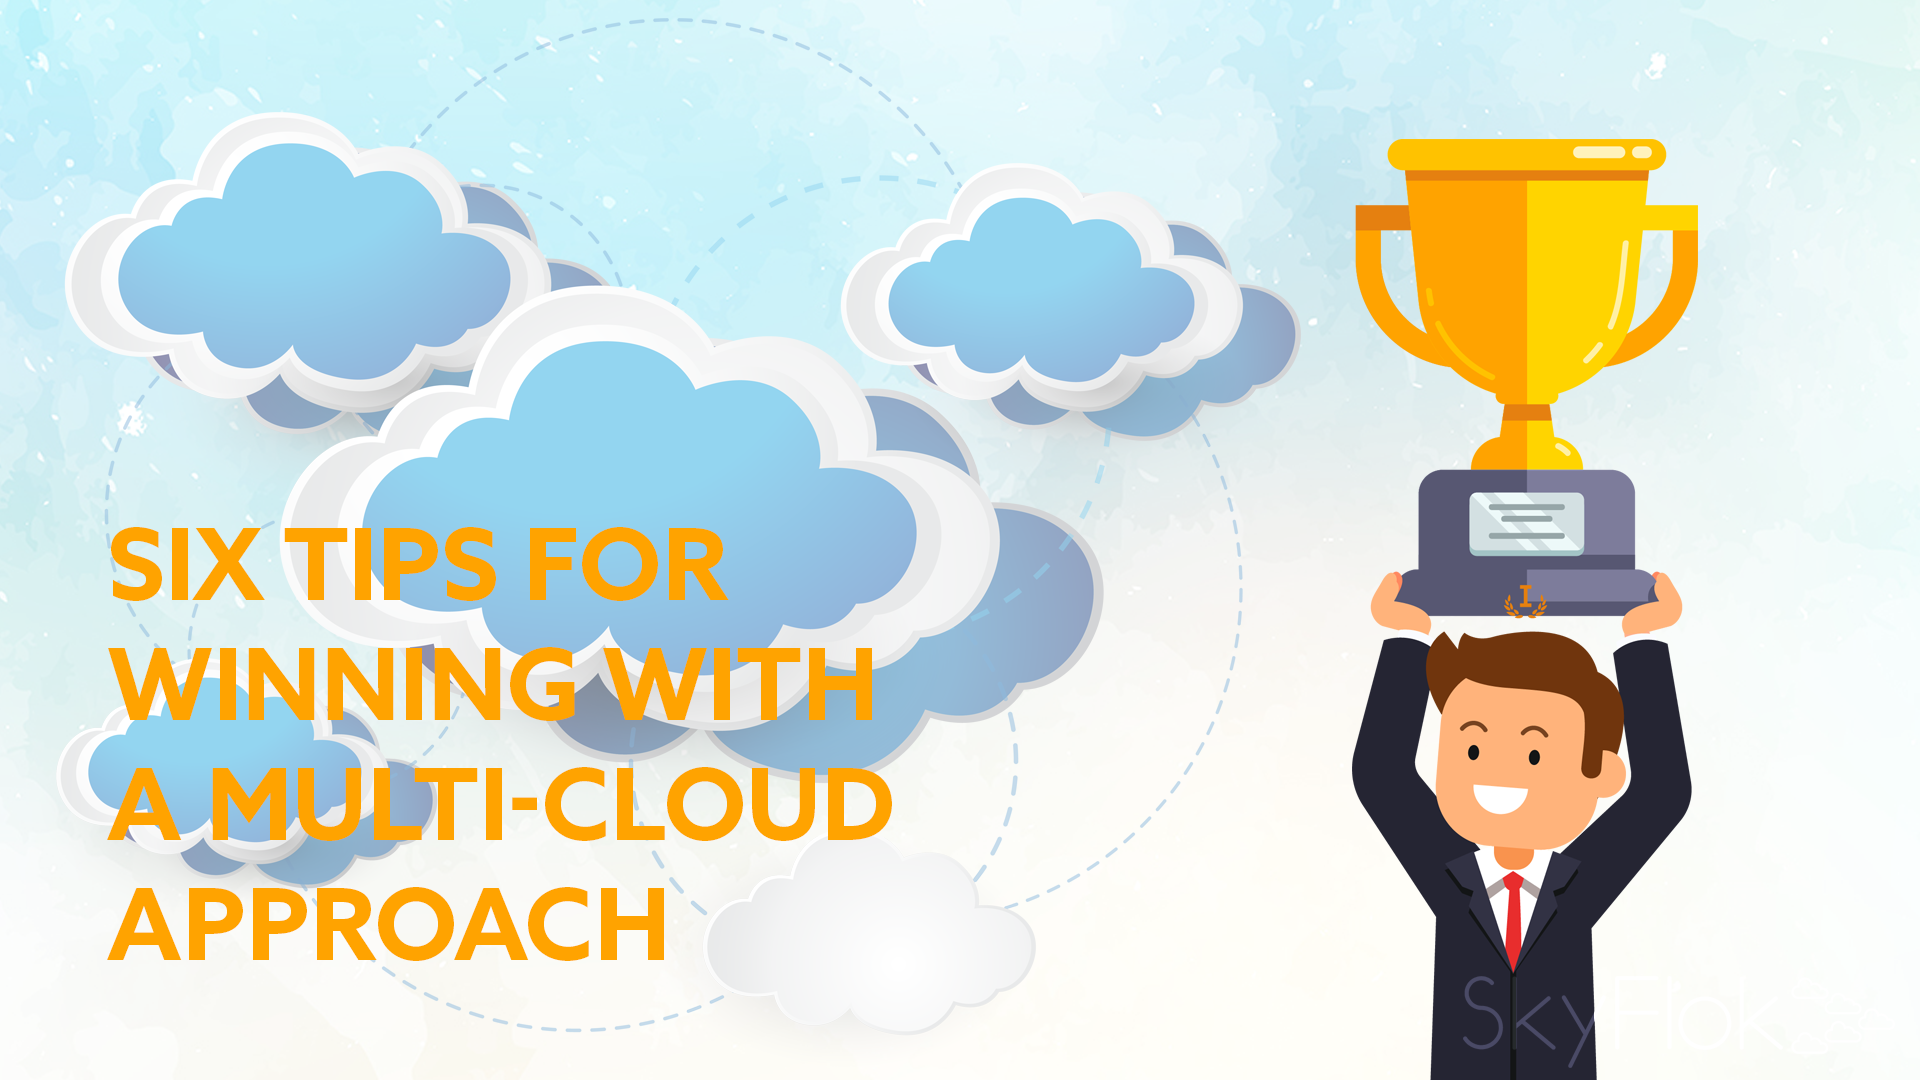 Six Tips for Winning With a Multi-Cloud Approach